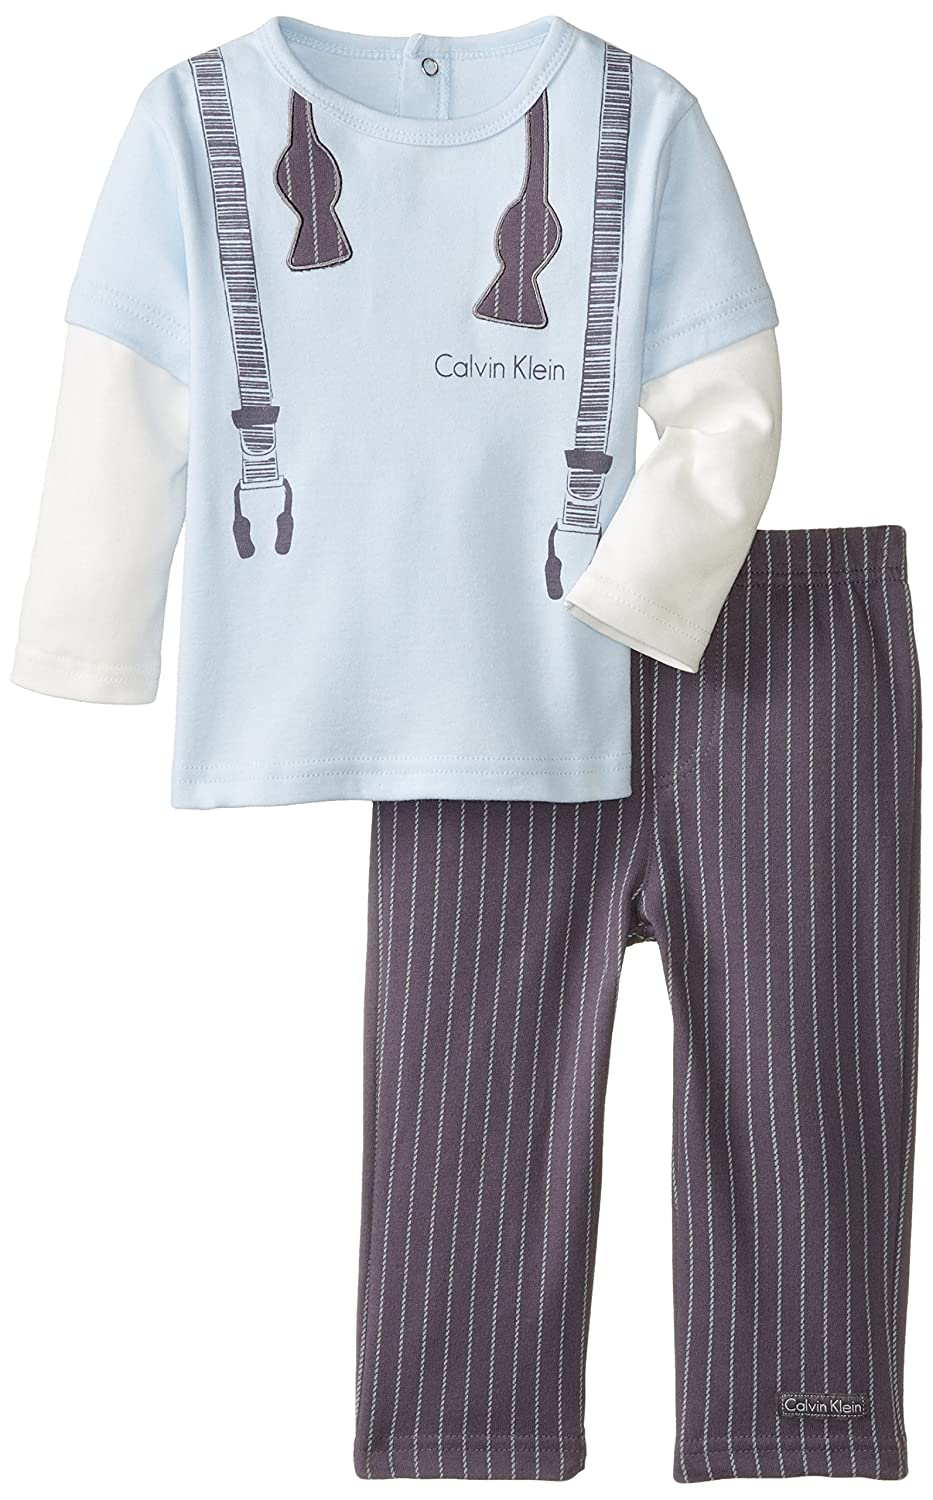 Calvin Klein Baby Boys' Twofer Long Sleeve Tee with Pull On Pants delphi брускетта из печеного перца 230 г